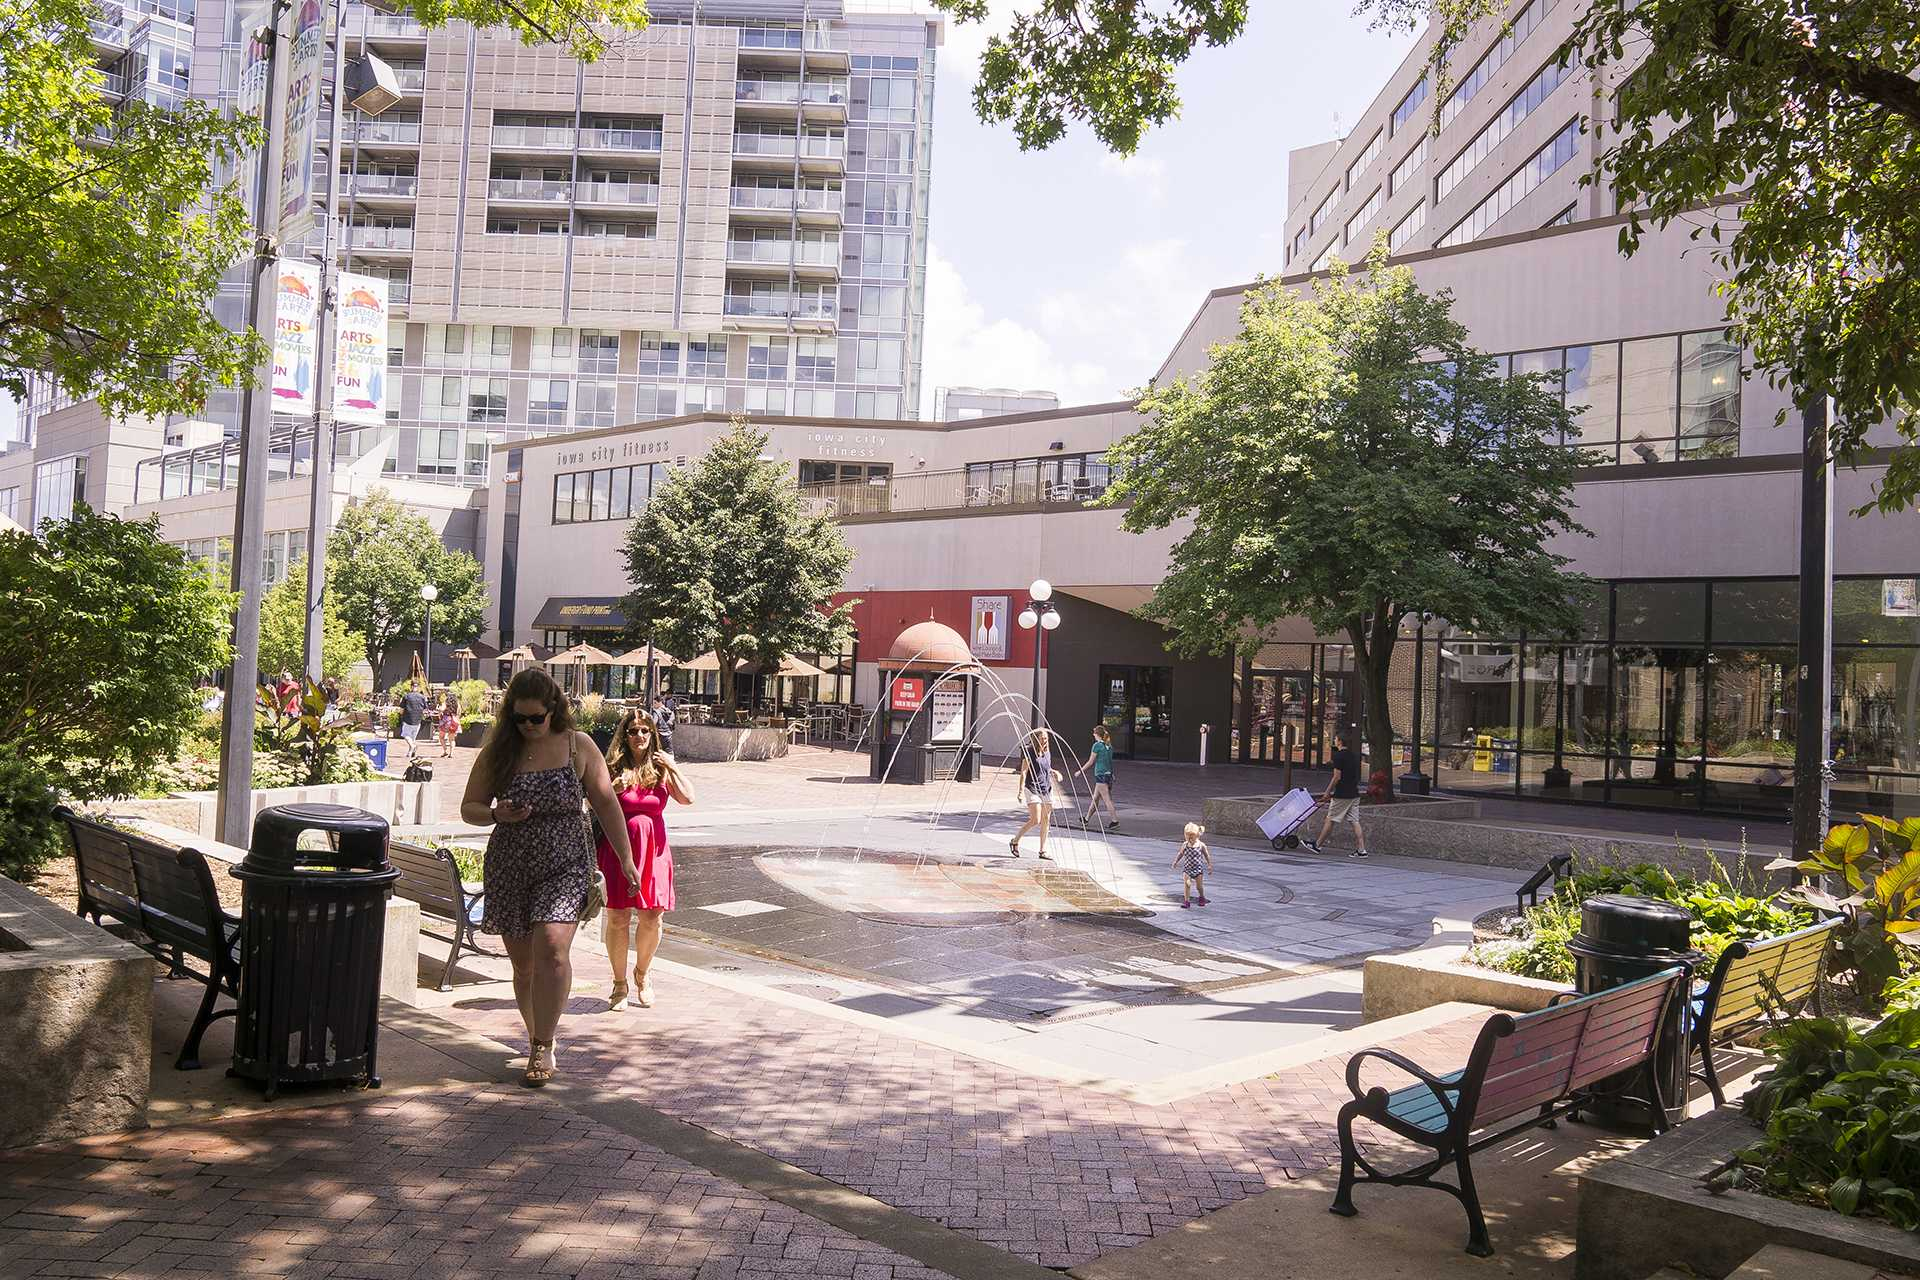 Free Wi-Fi service coming to Ped Mall